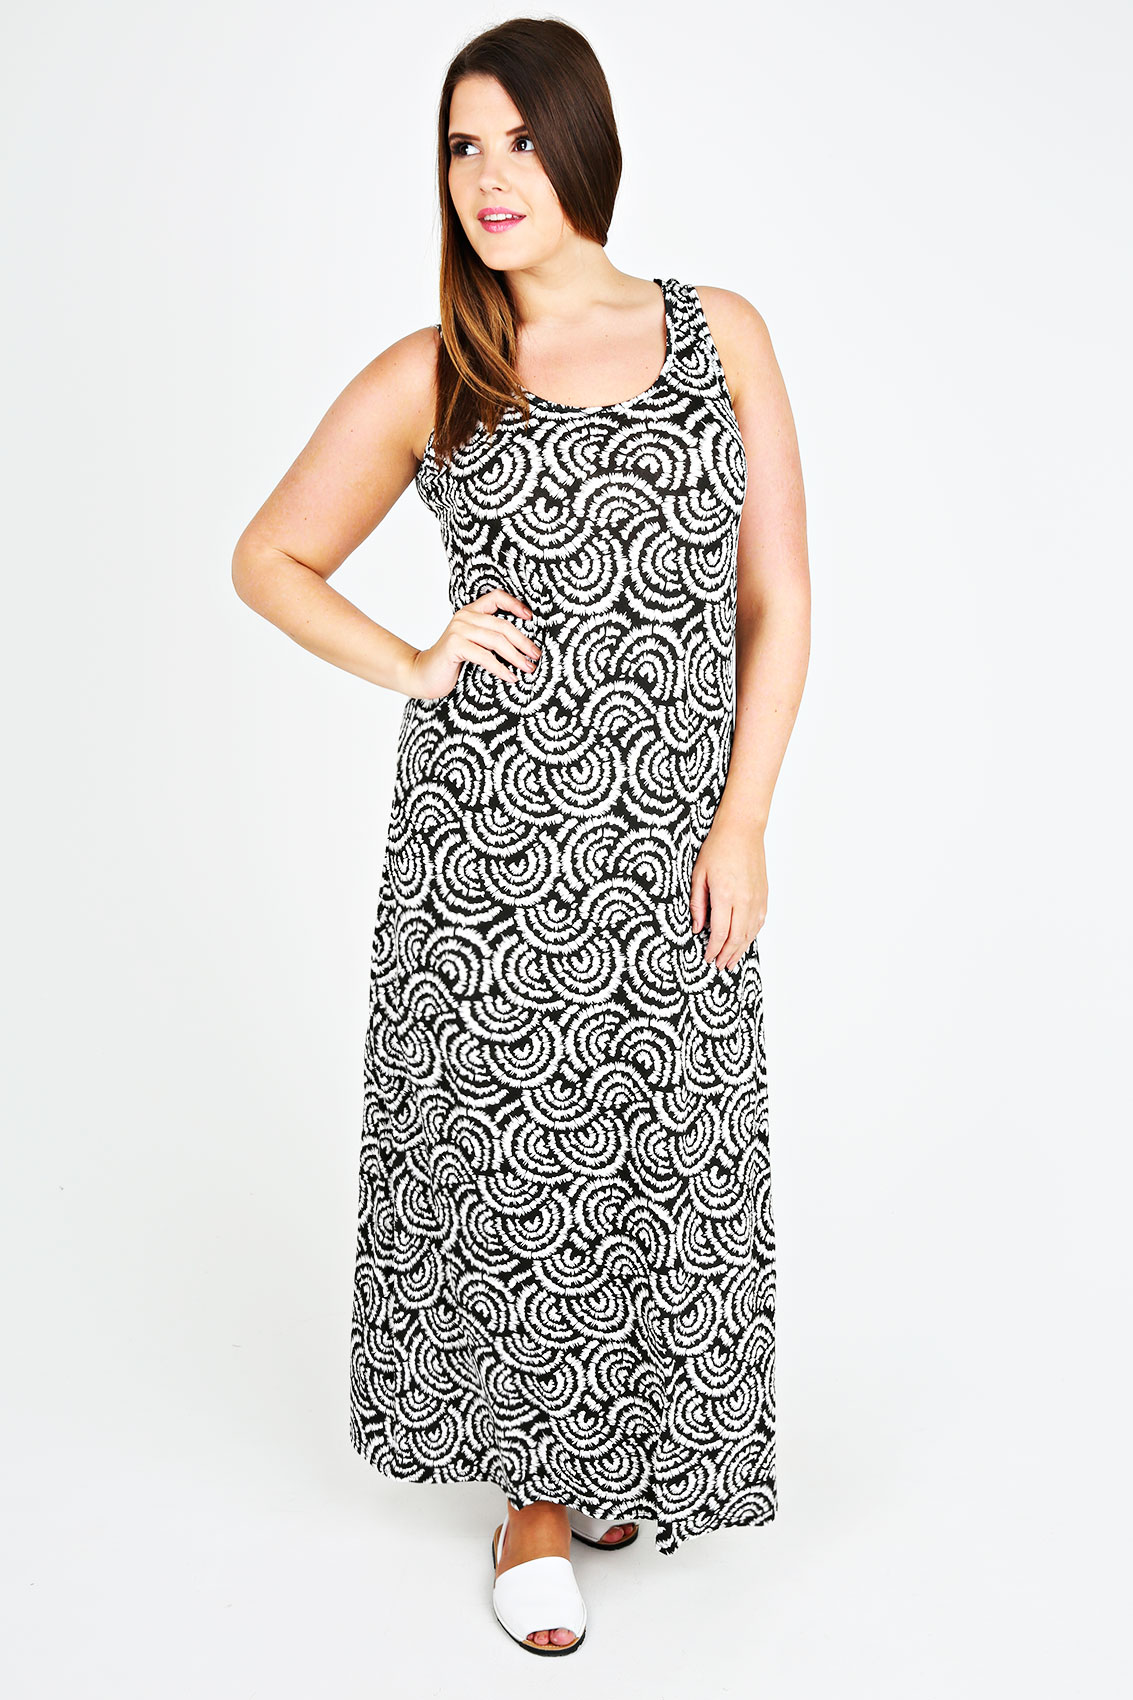 black white swirl print jersey maxi dress plus size 14. Black Bedroom Furniture Sets. Home Design Ideas